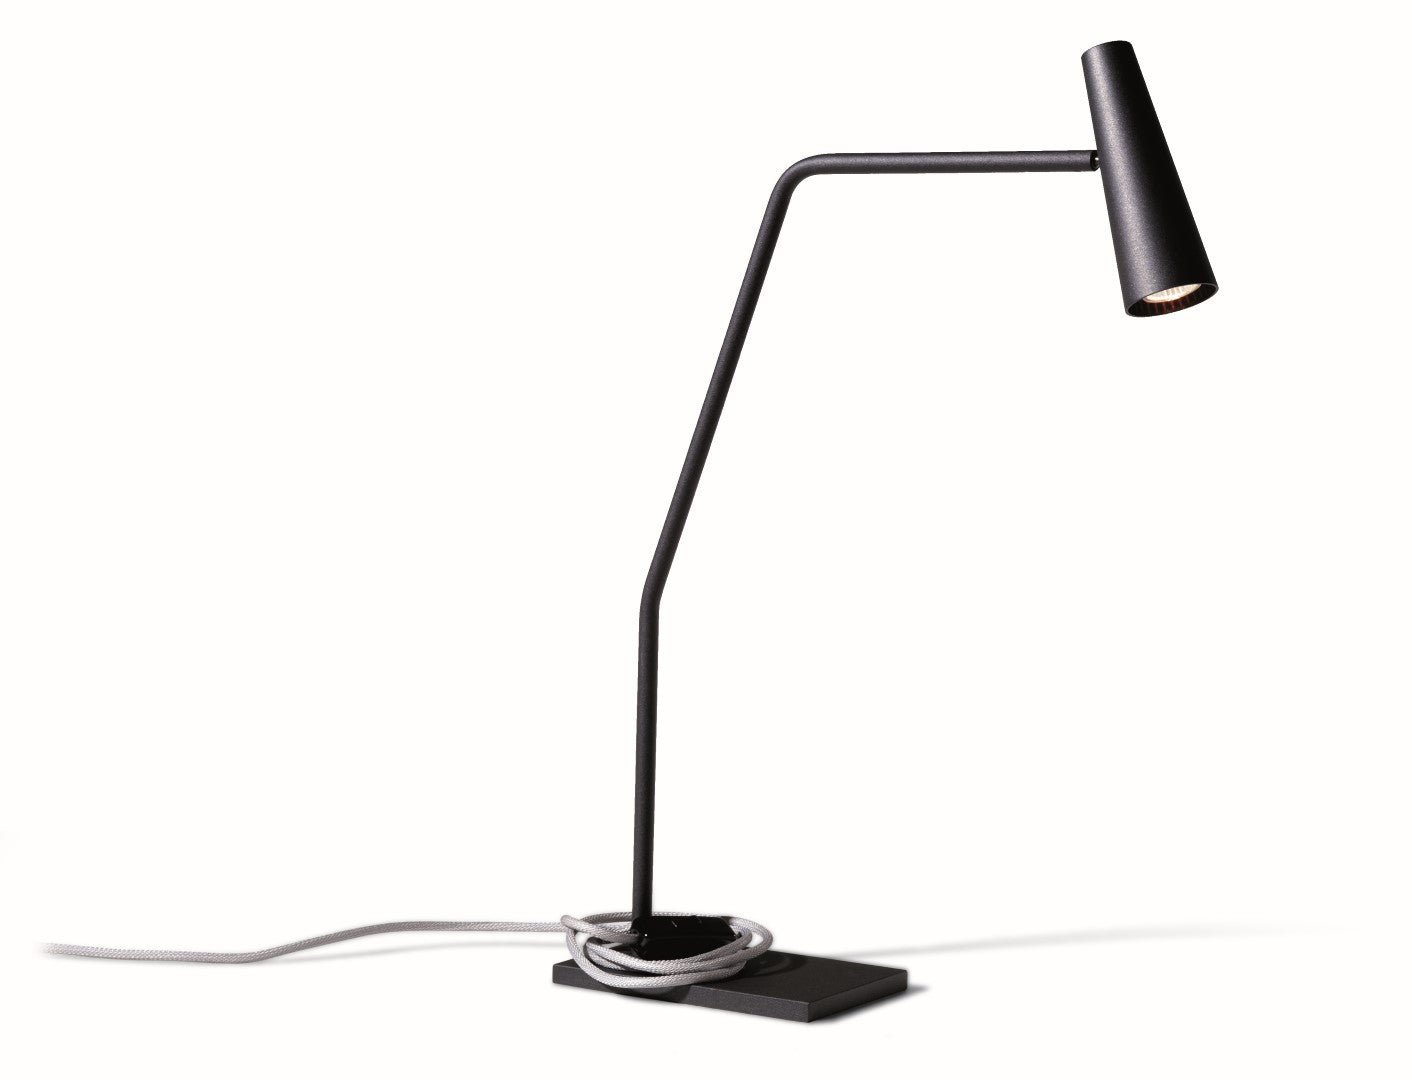 Table lamp hector dekoera com table lamp hector table lamp hector aloadofball Image collections